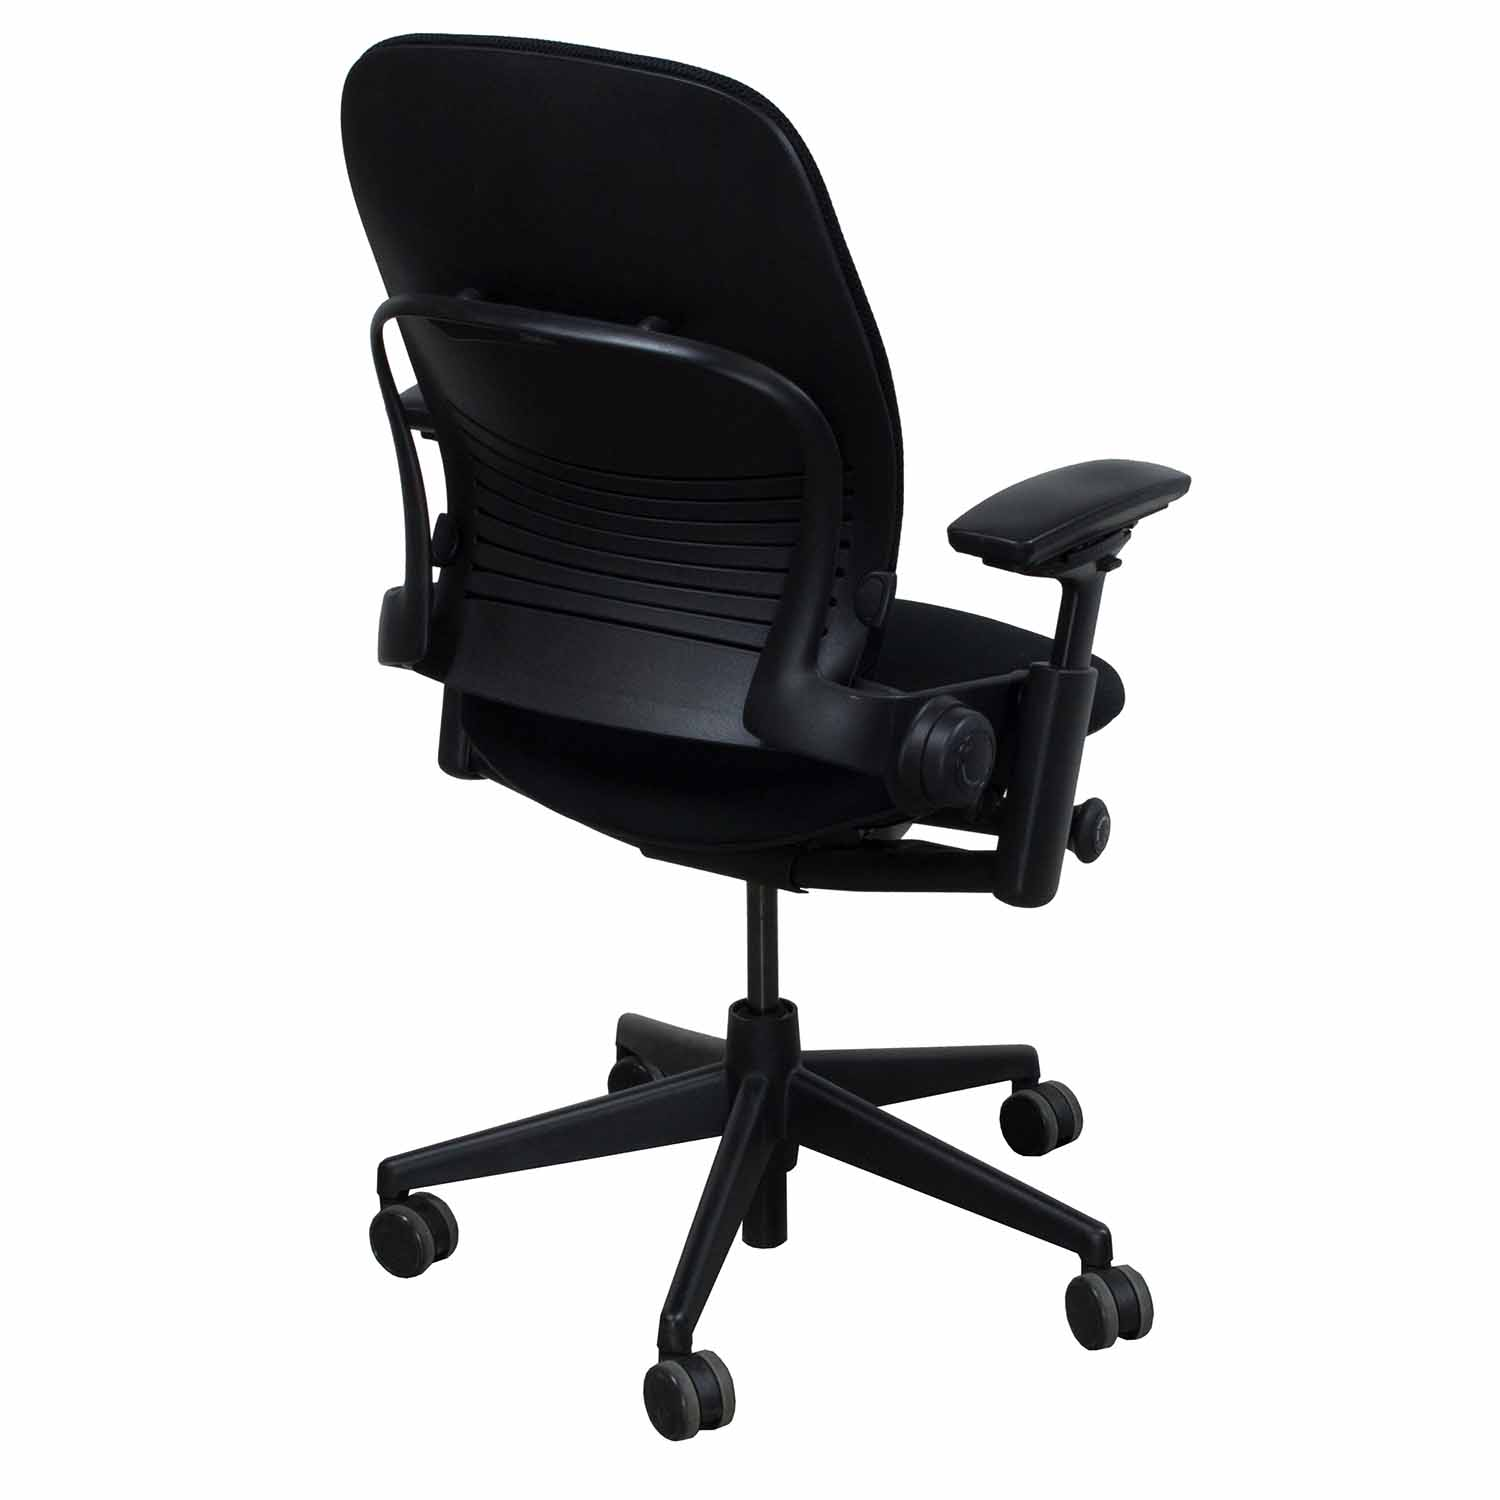 Steelcase Chairs Steelcase Leap V2 Used 3d Mesh Task Chair Black